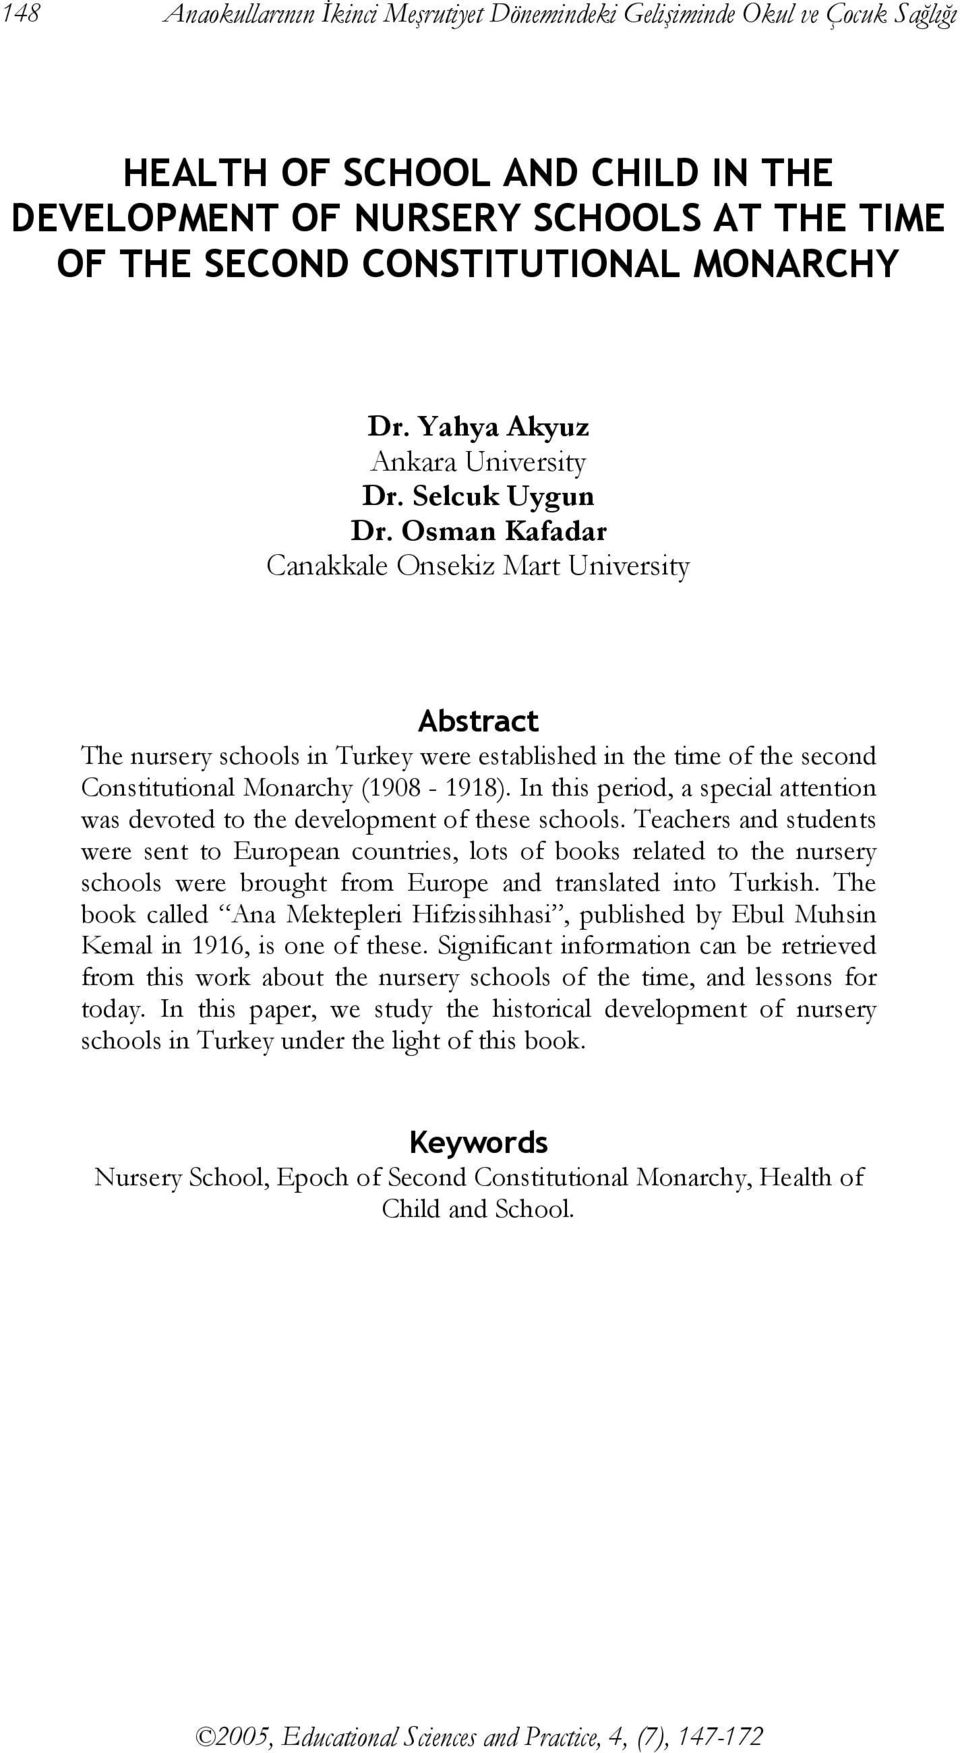 Osman Kafadar Canakkale Onsekiz Mart University Abstract The nursery schools in Turkey were established in the time of the second Constitutional Monarchy (1908-1918).